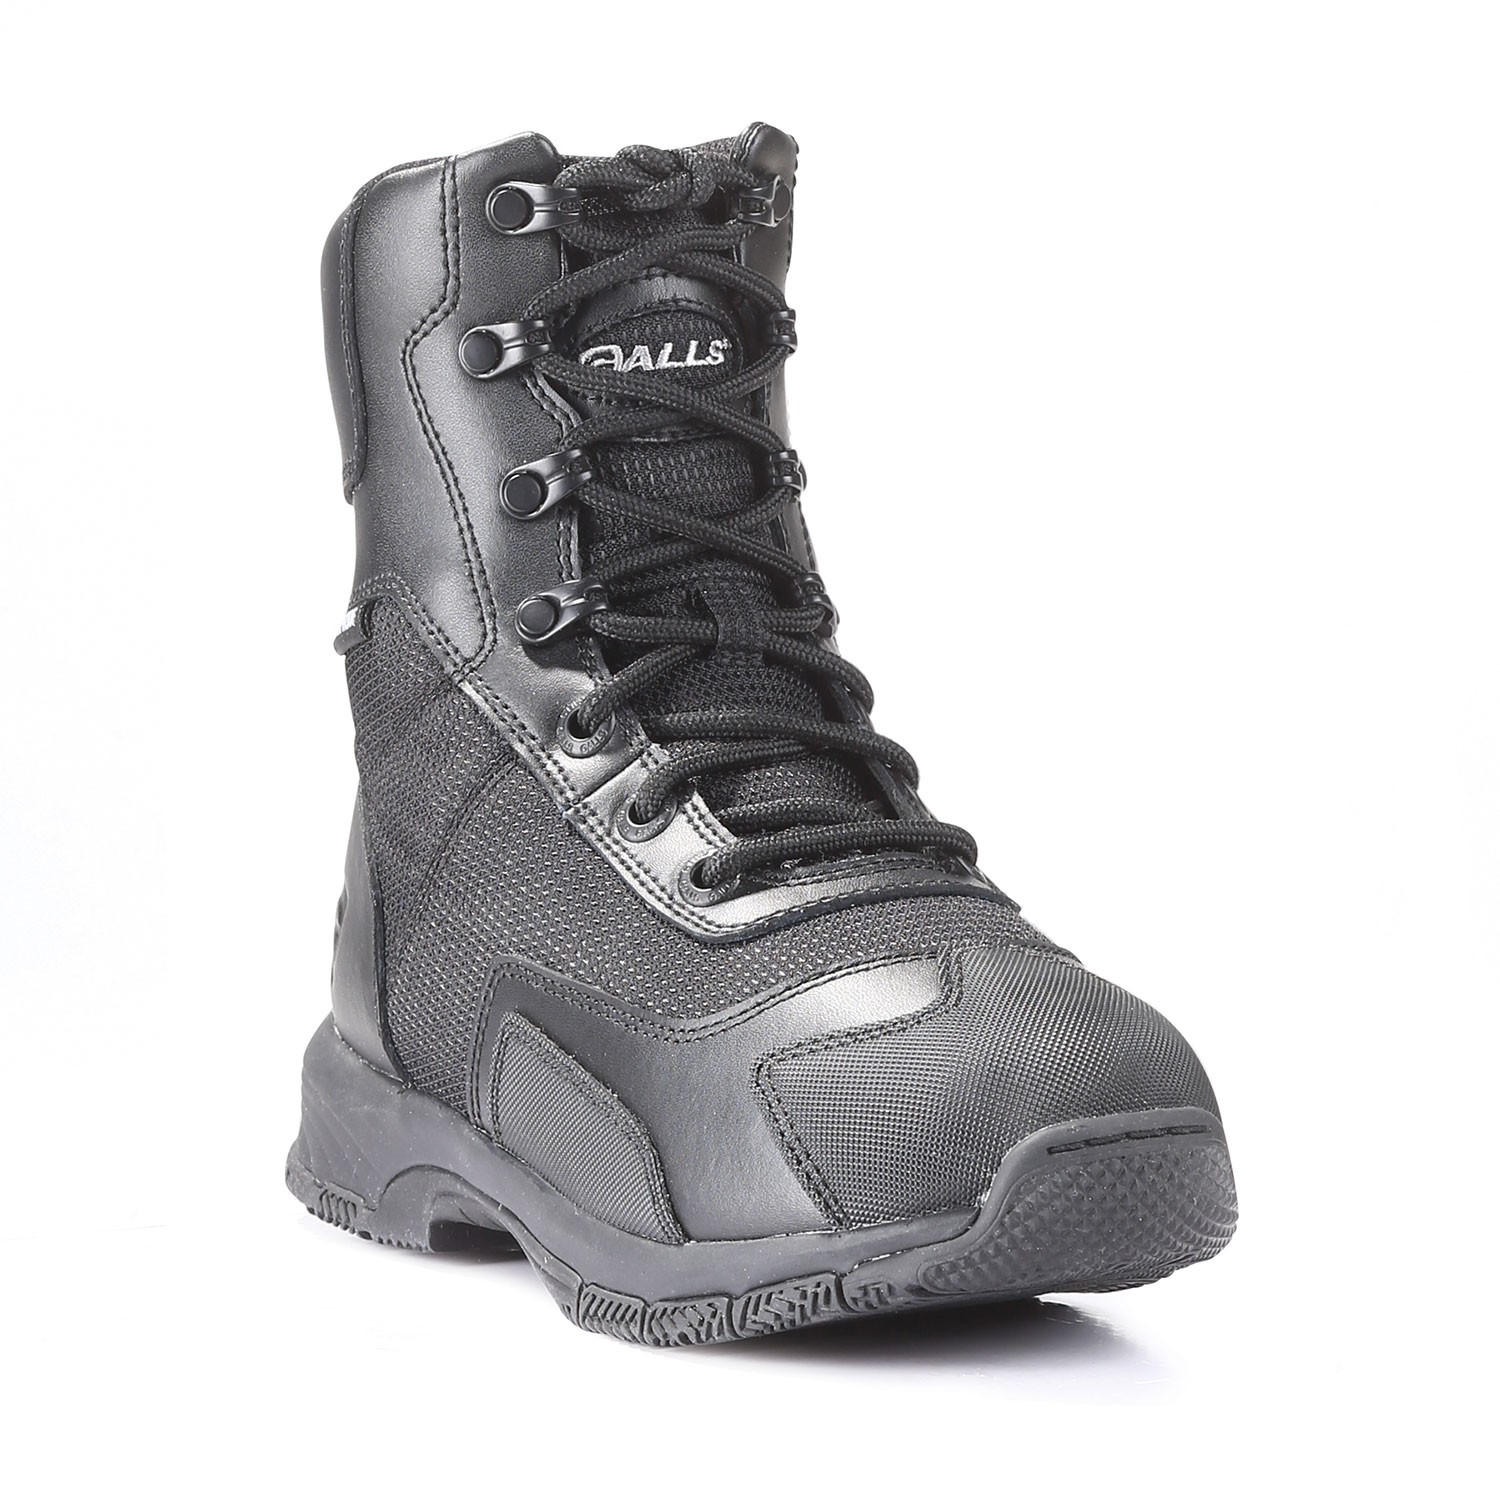 "Galls Women's G-TAC Athletic 8"" Side-Zip Waterproof Boot"